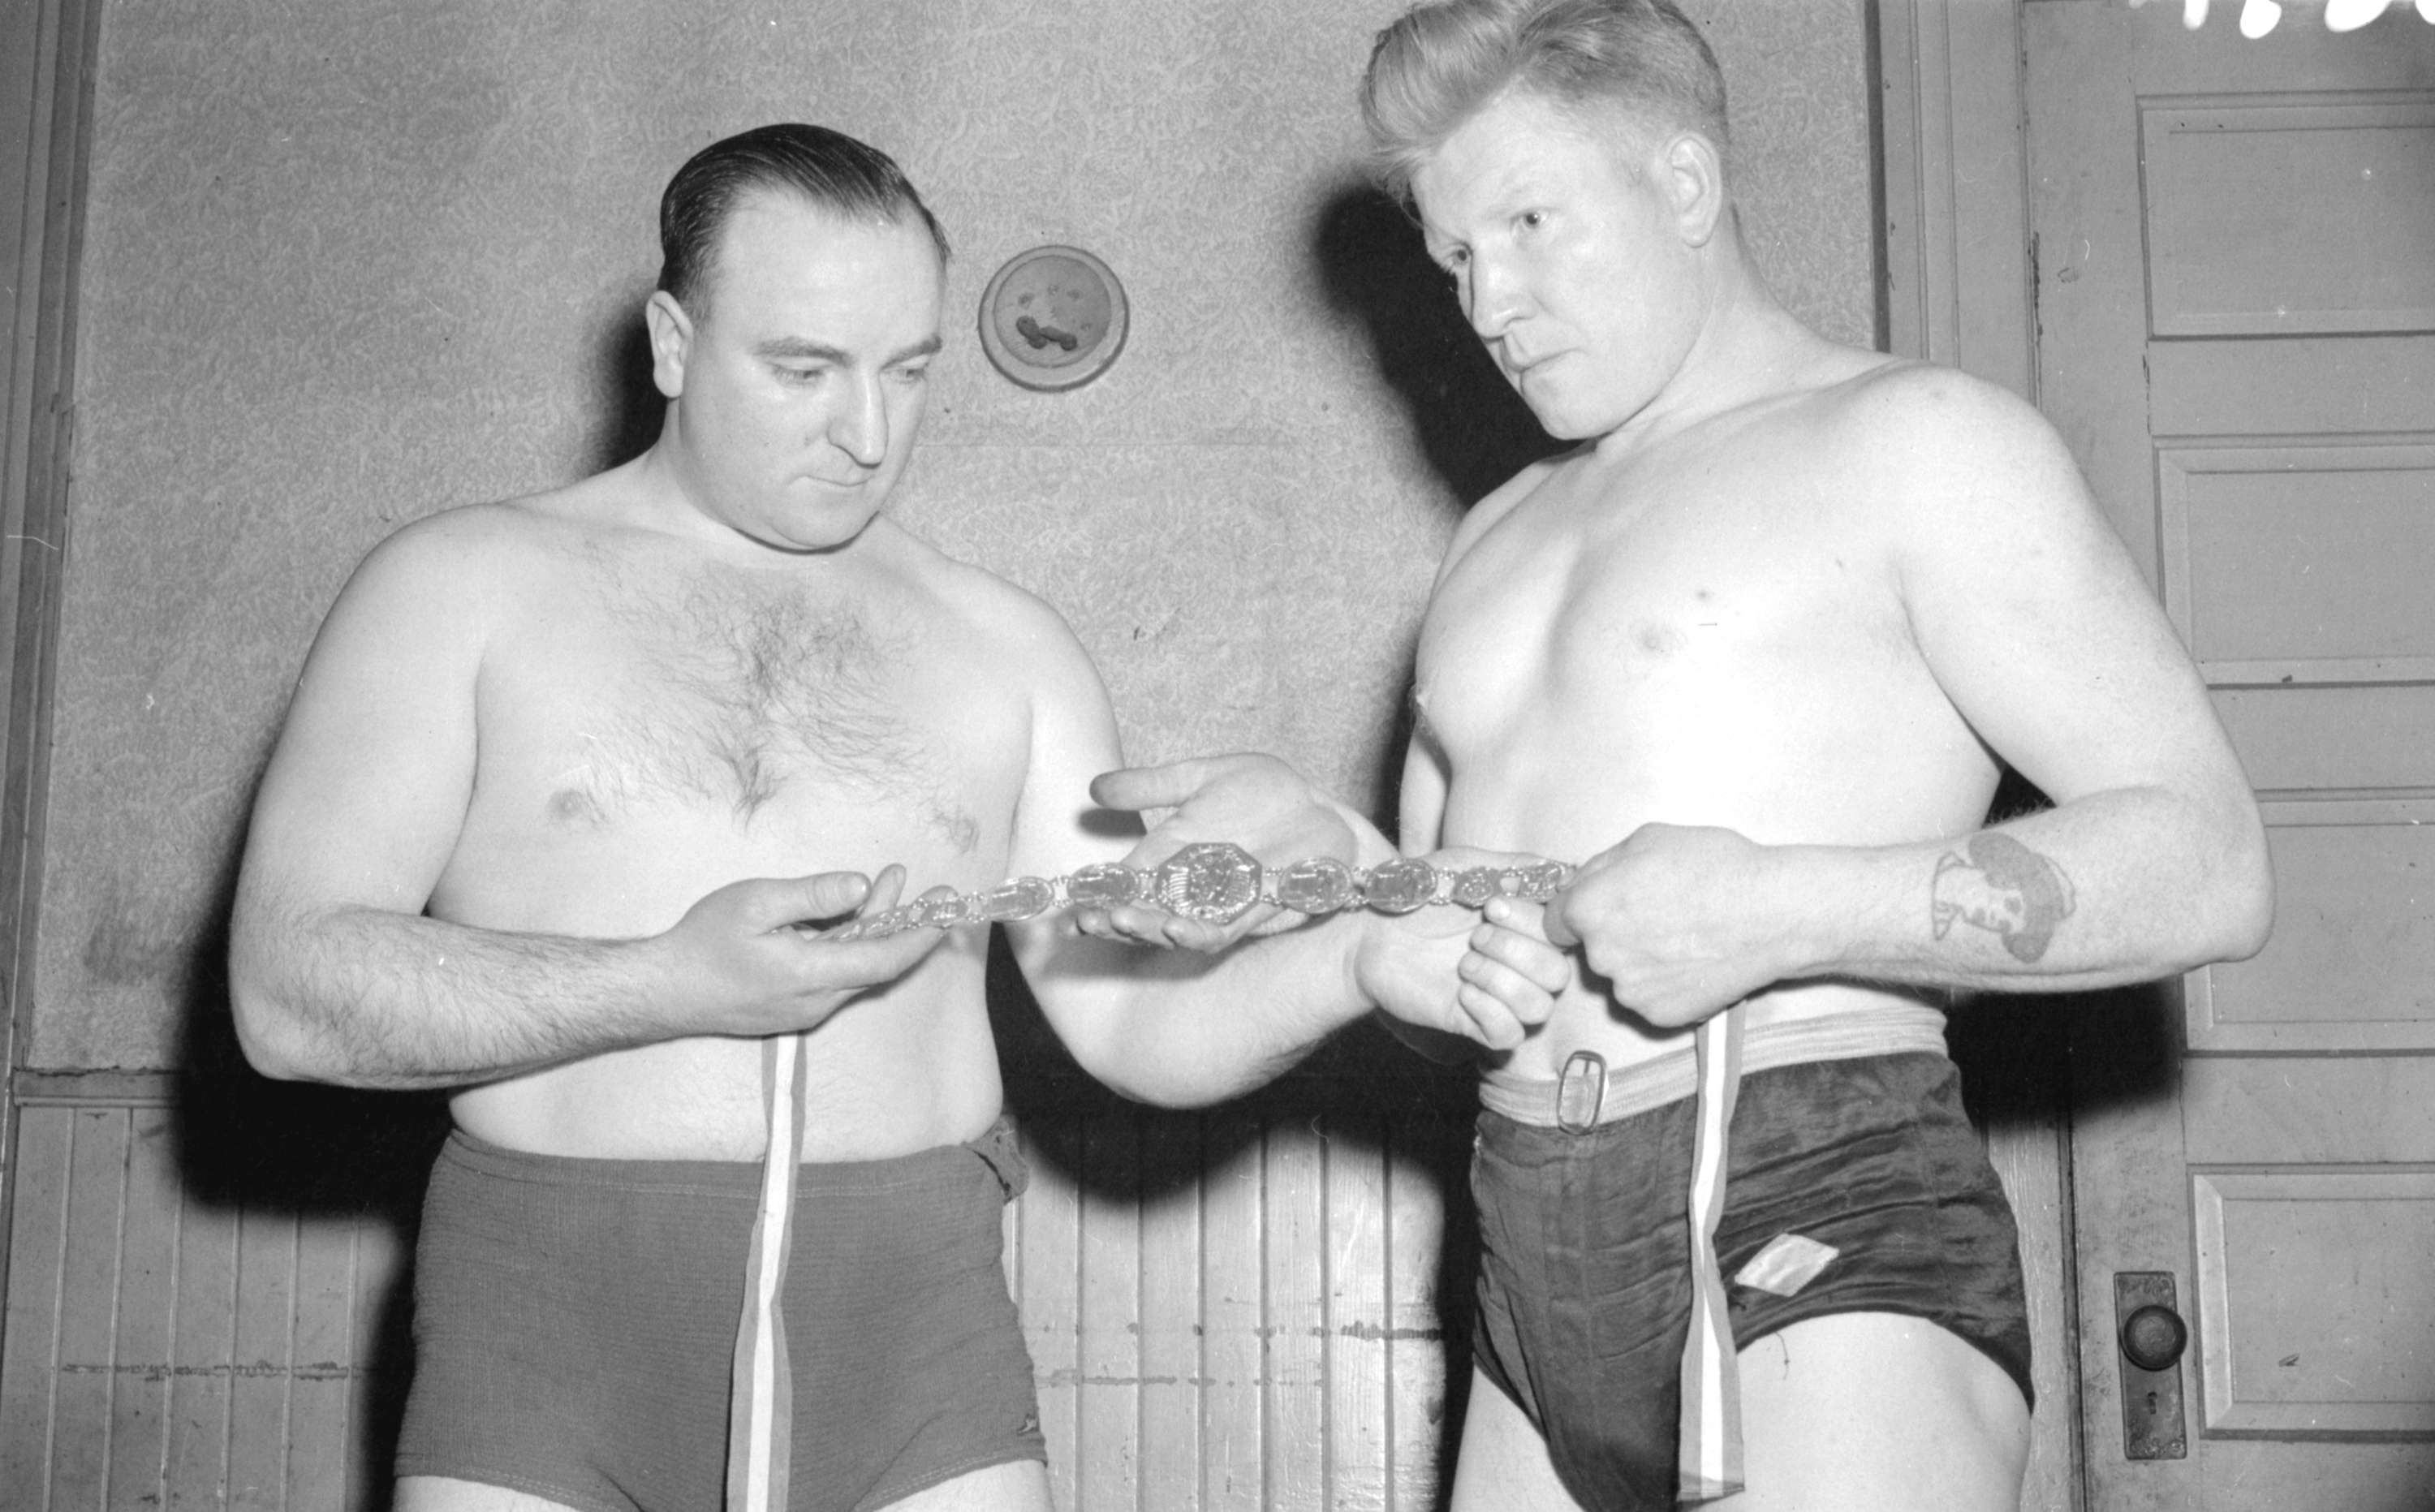 Jack Whalen and Jack Eaton looking at a wrestling belt ...